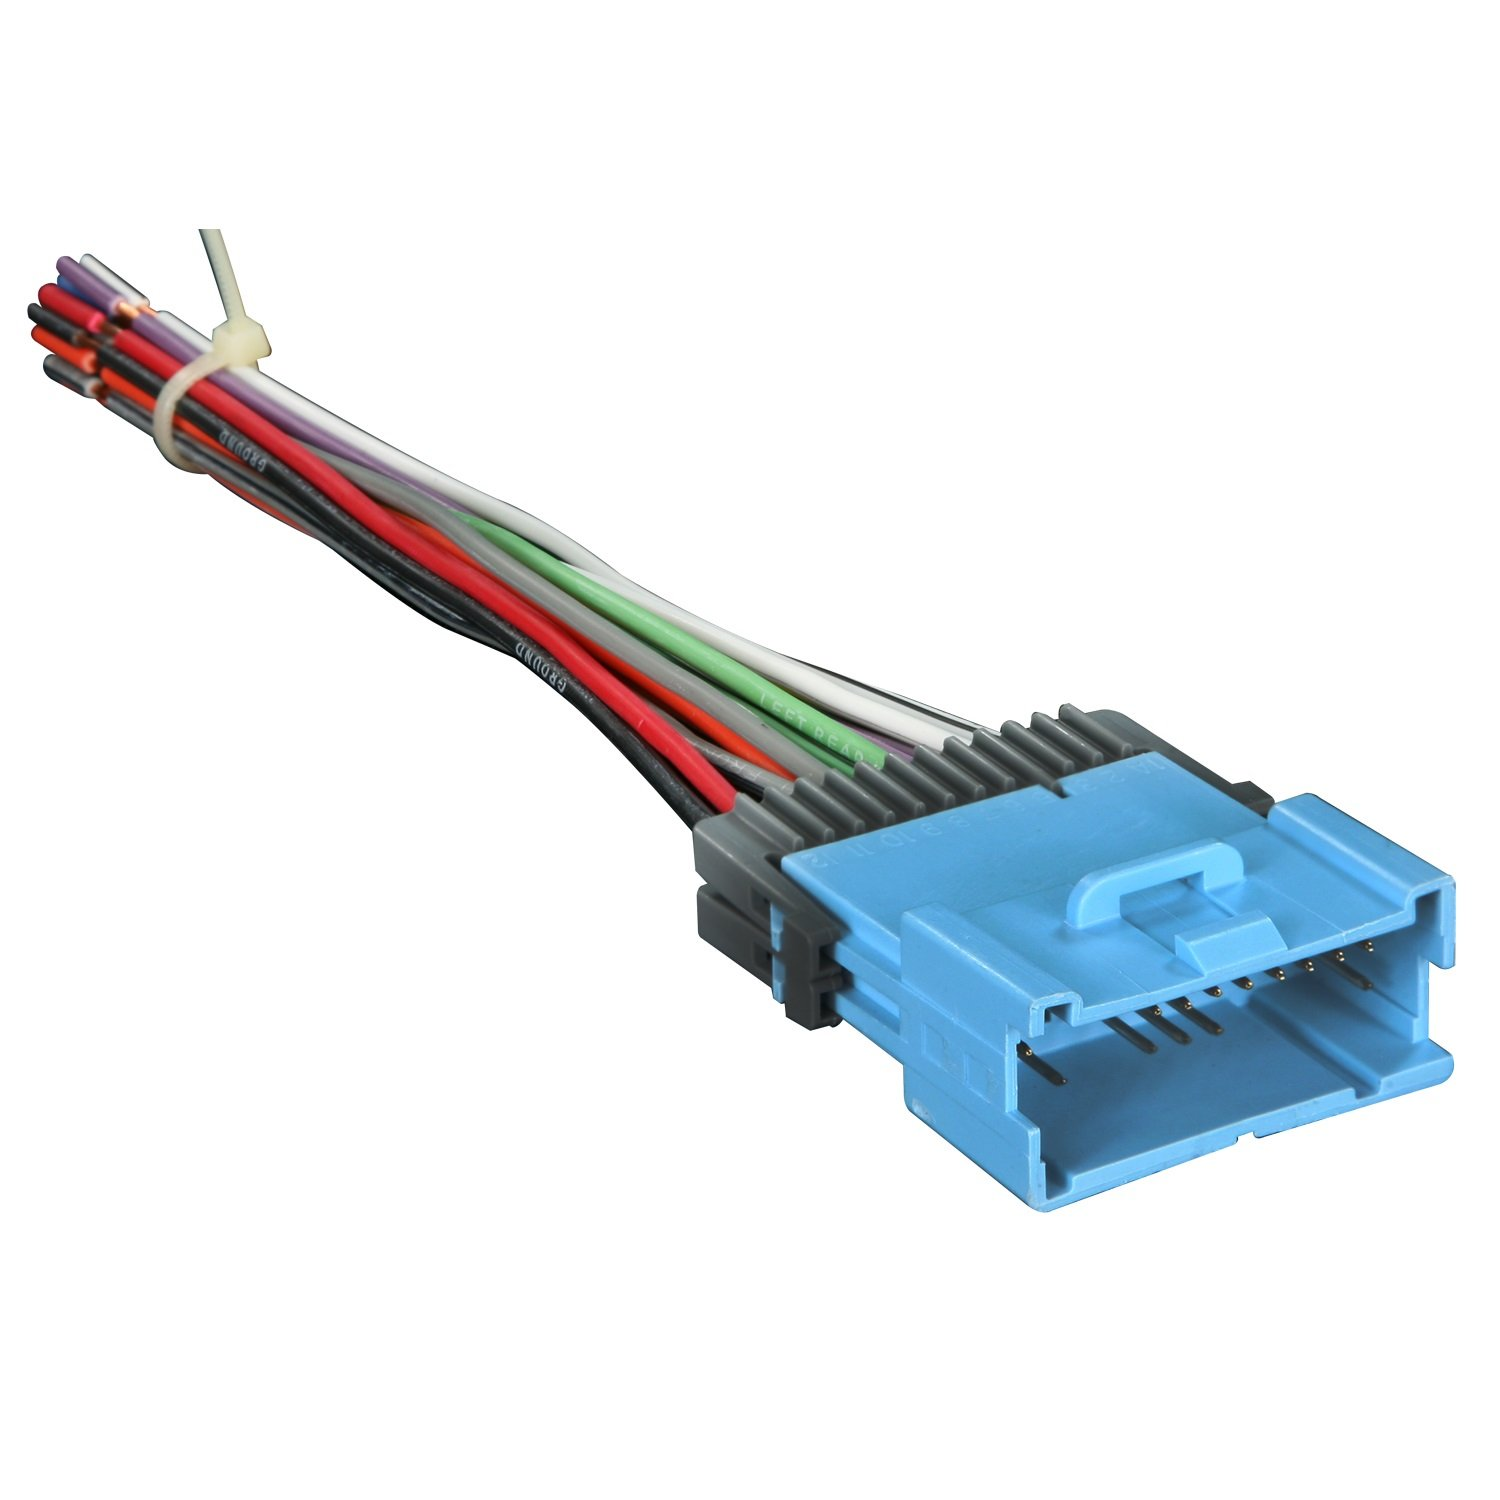 61ruWw 2aJL._SL1500_ amazon com metra 70 2102 radio wiring harness for gm 04 05 car wiring harness for radio at aneh.co